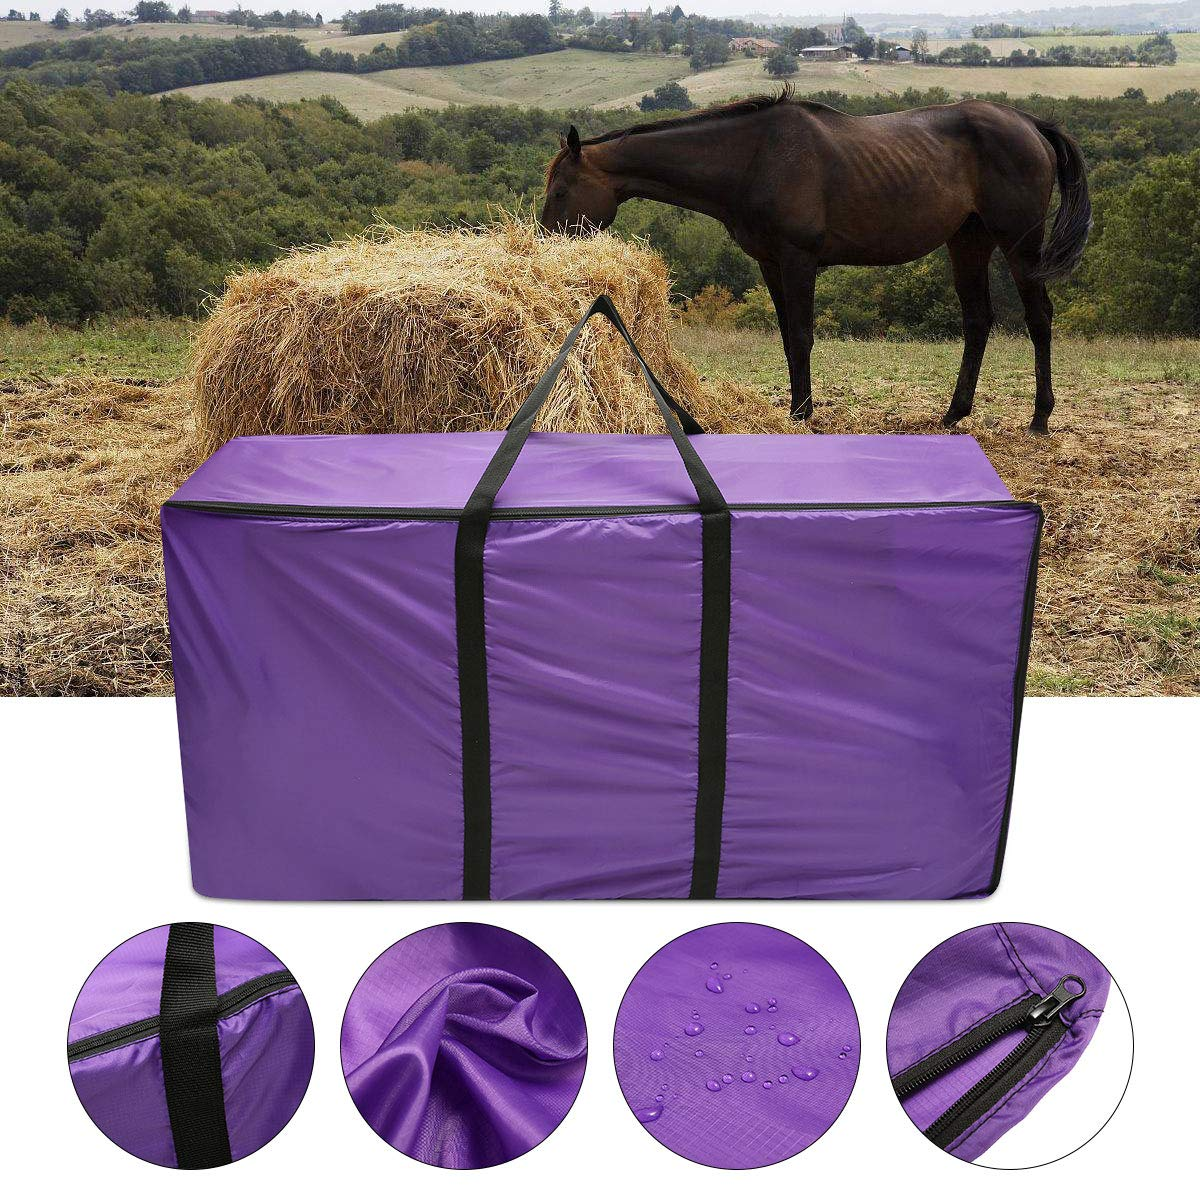 ESSORT Hay Bale Storage Bag, Extra Large Tote Hay Bale Carry Bag, Foldable Portable Horse and Livestock Hay Bale Bags with Zipper Waterproof, Purple 45'' x 14'' x 23'' by ESSORT